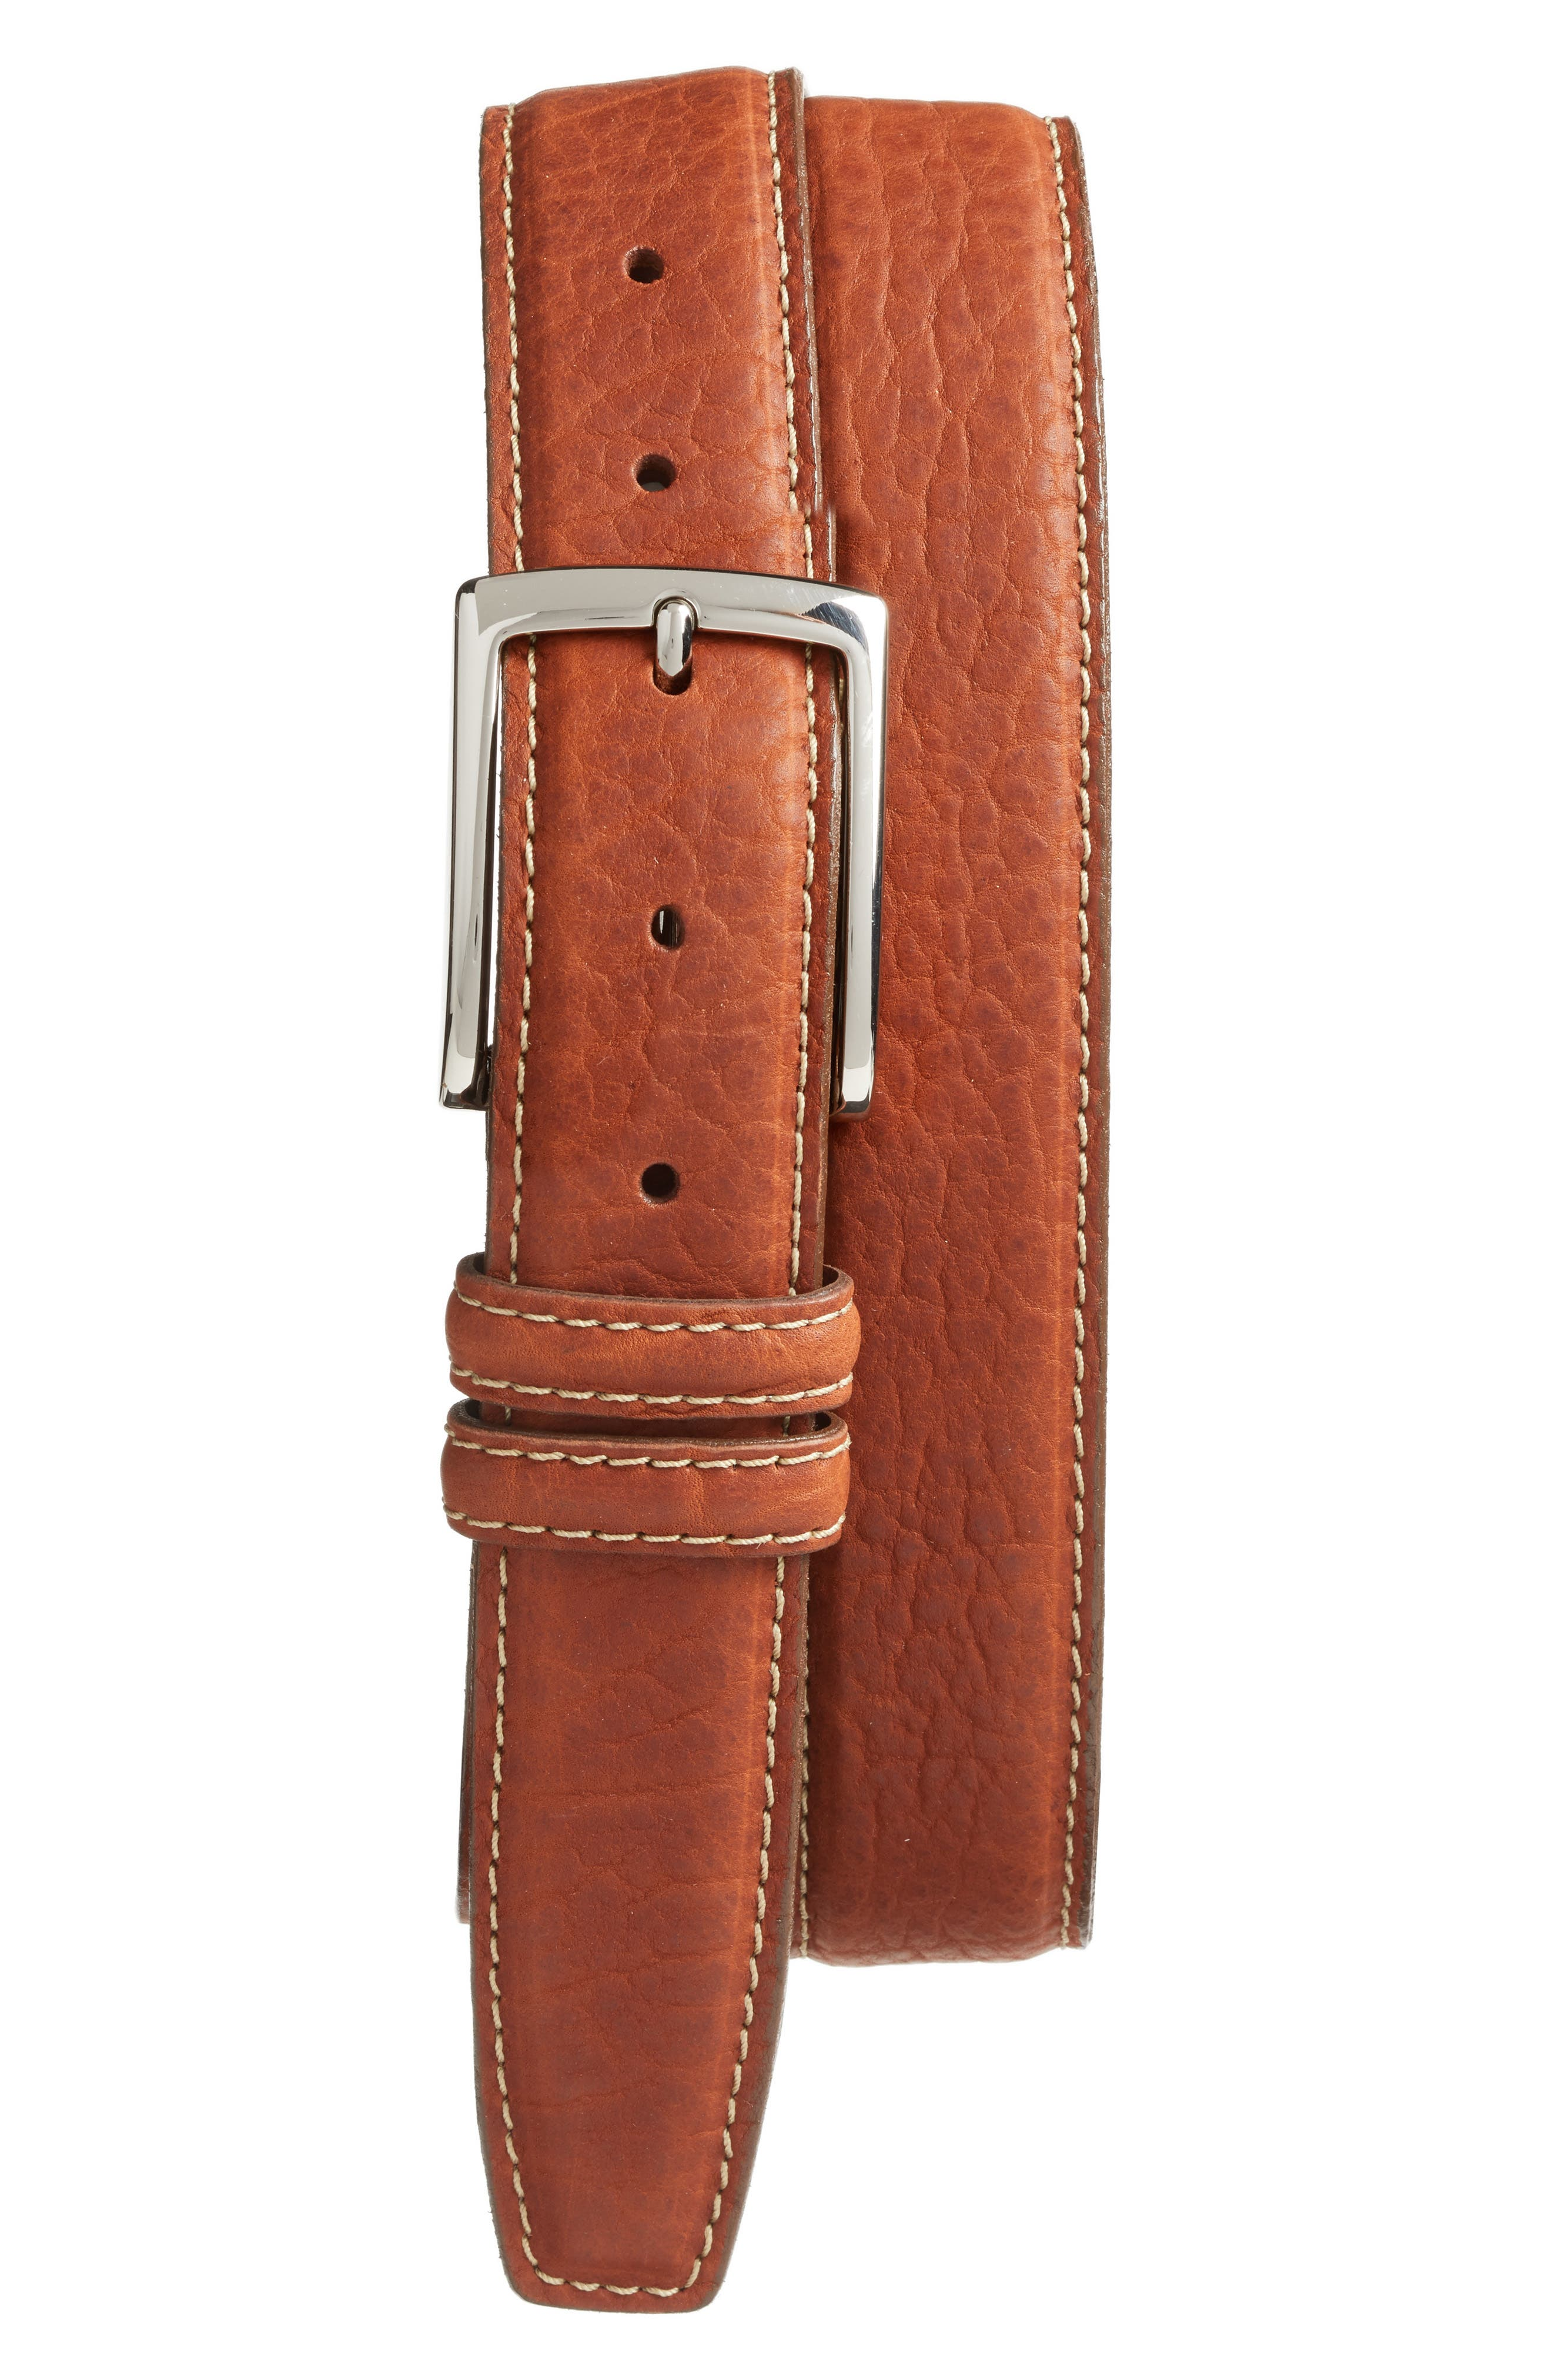 Main Image - Torino Belts Leather Belt